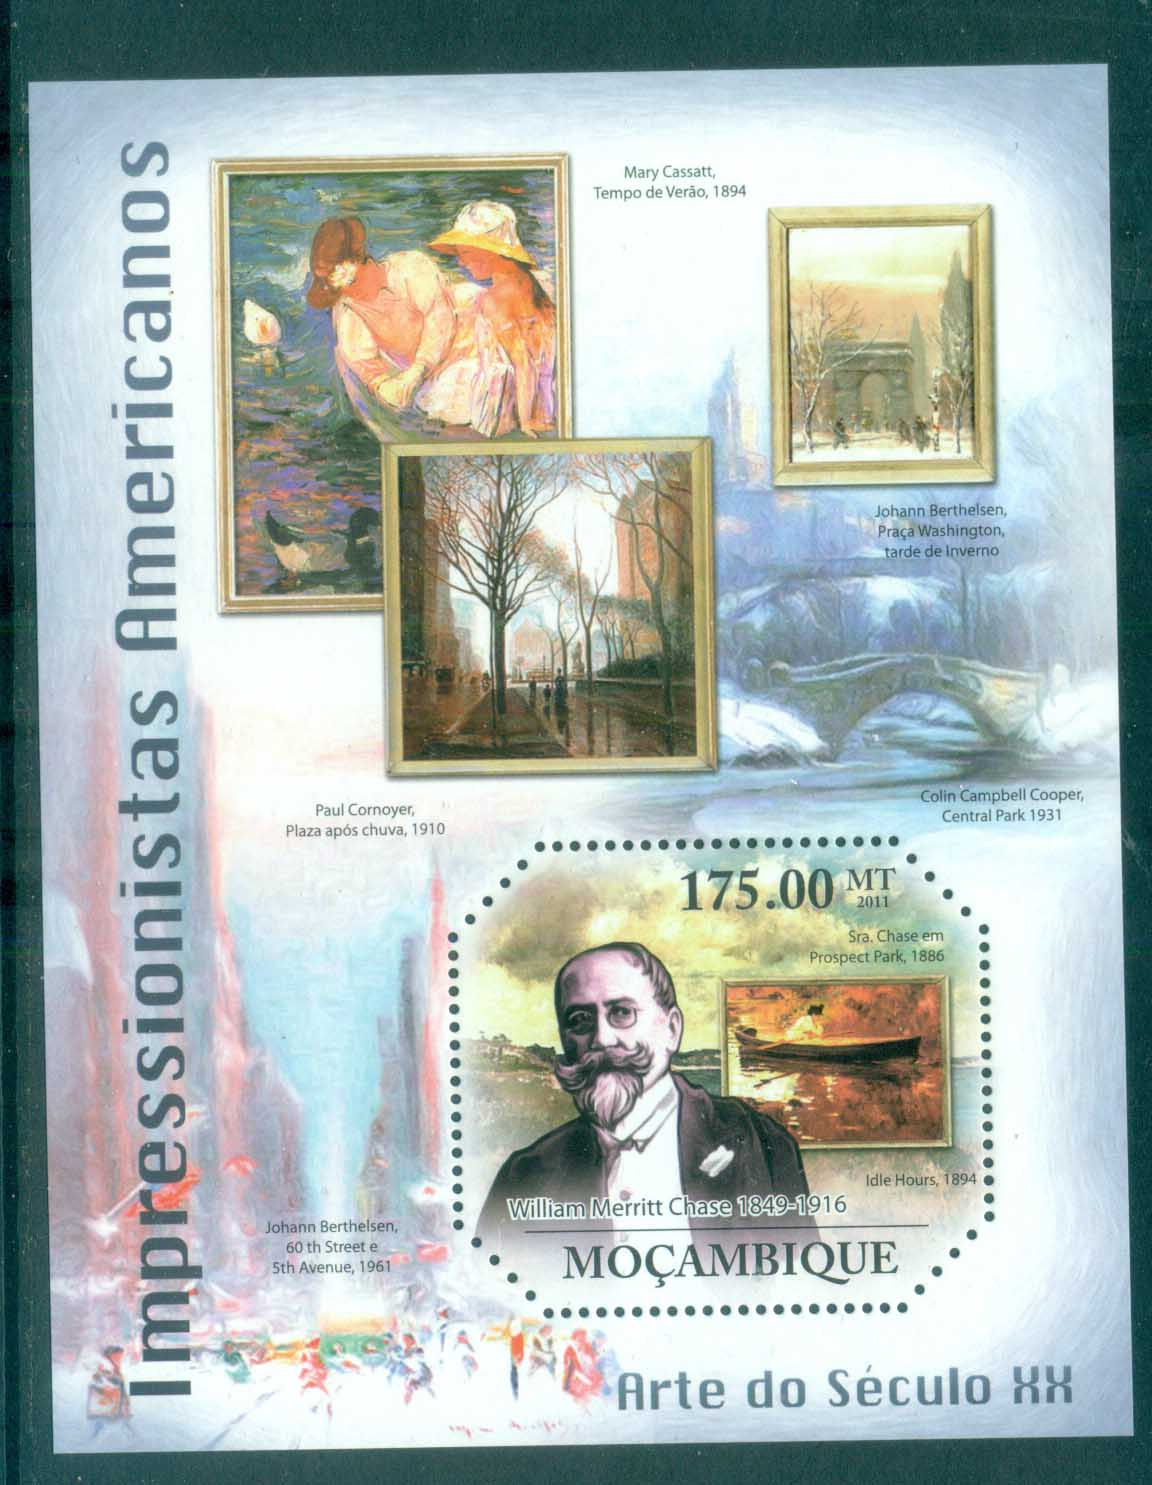 Mozambique 2011 Art, Painting, American Impressionists, Mary Cassat, Chase, Cornoyer MS MUH MOZ11315b